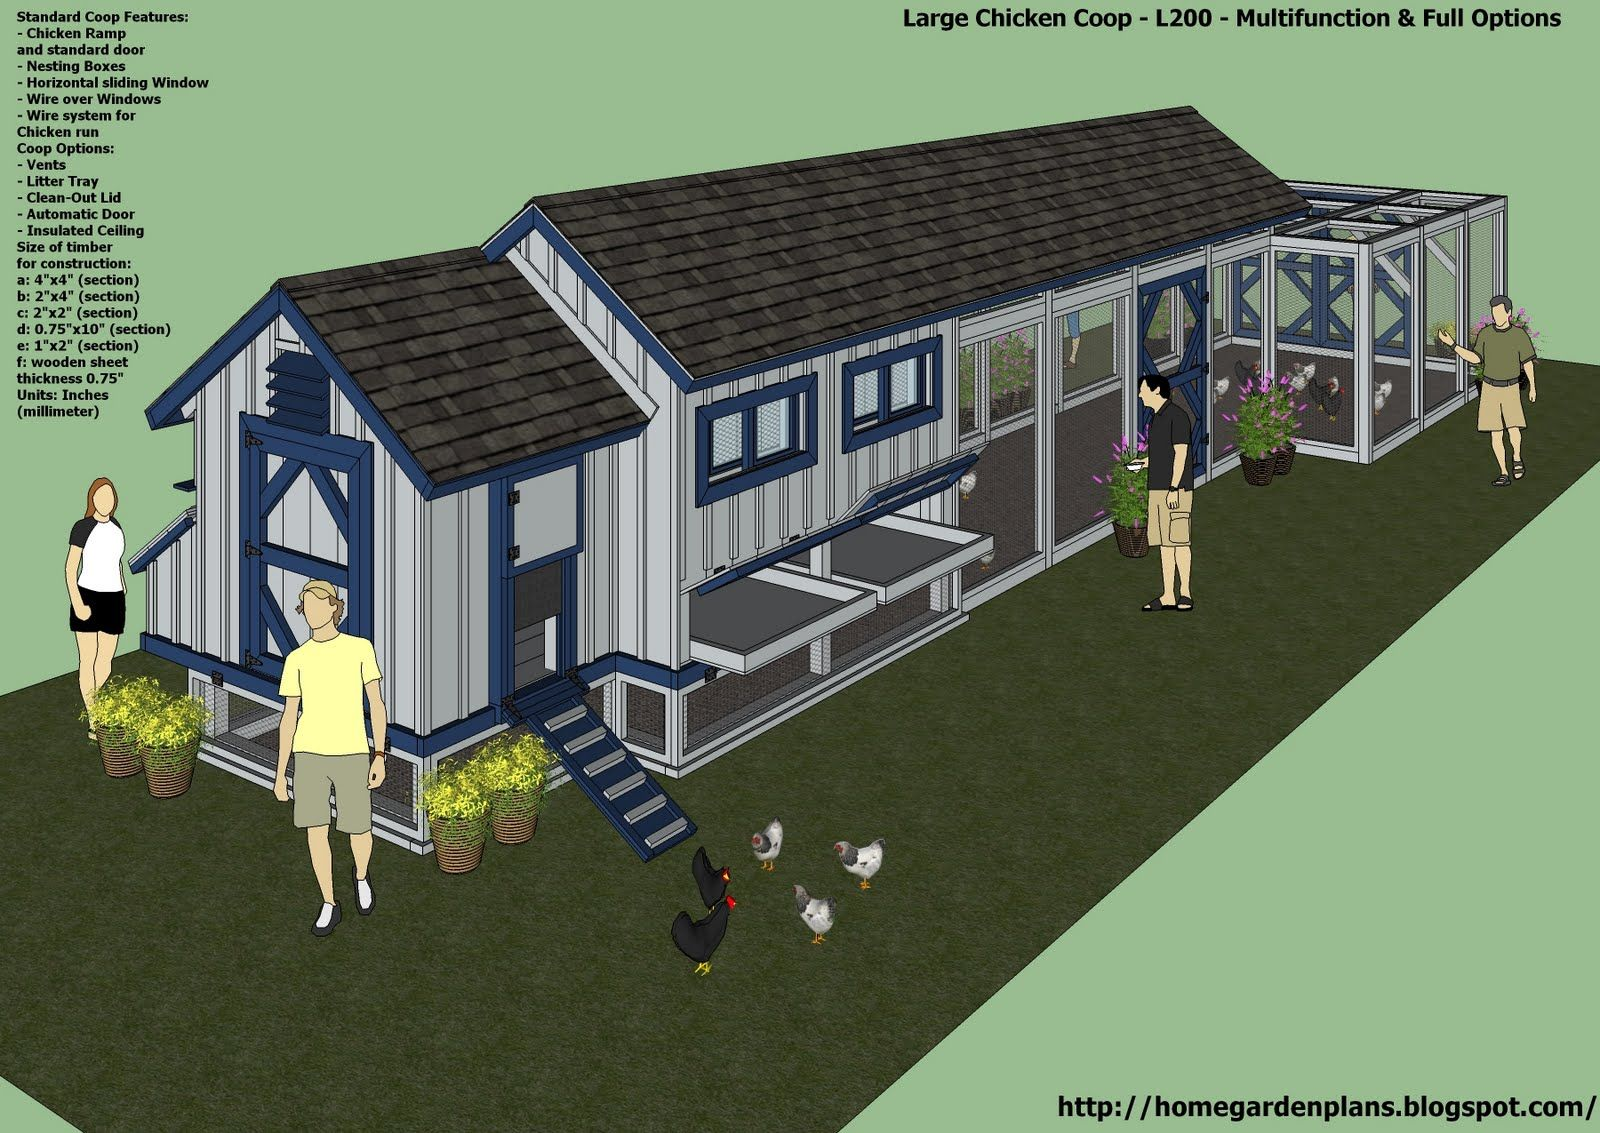 Chicken Coop Design Ideas 15 more awesome chicken coop designs and ideas cool diy homesteading projects by pioneer settler Home Garden Plans L200 Large Chicken Coop Plans How To Build A Chicken